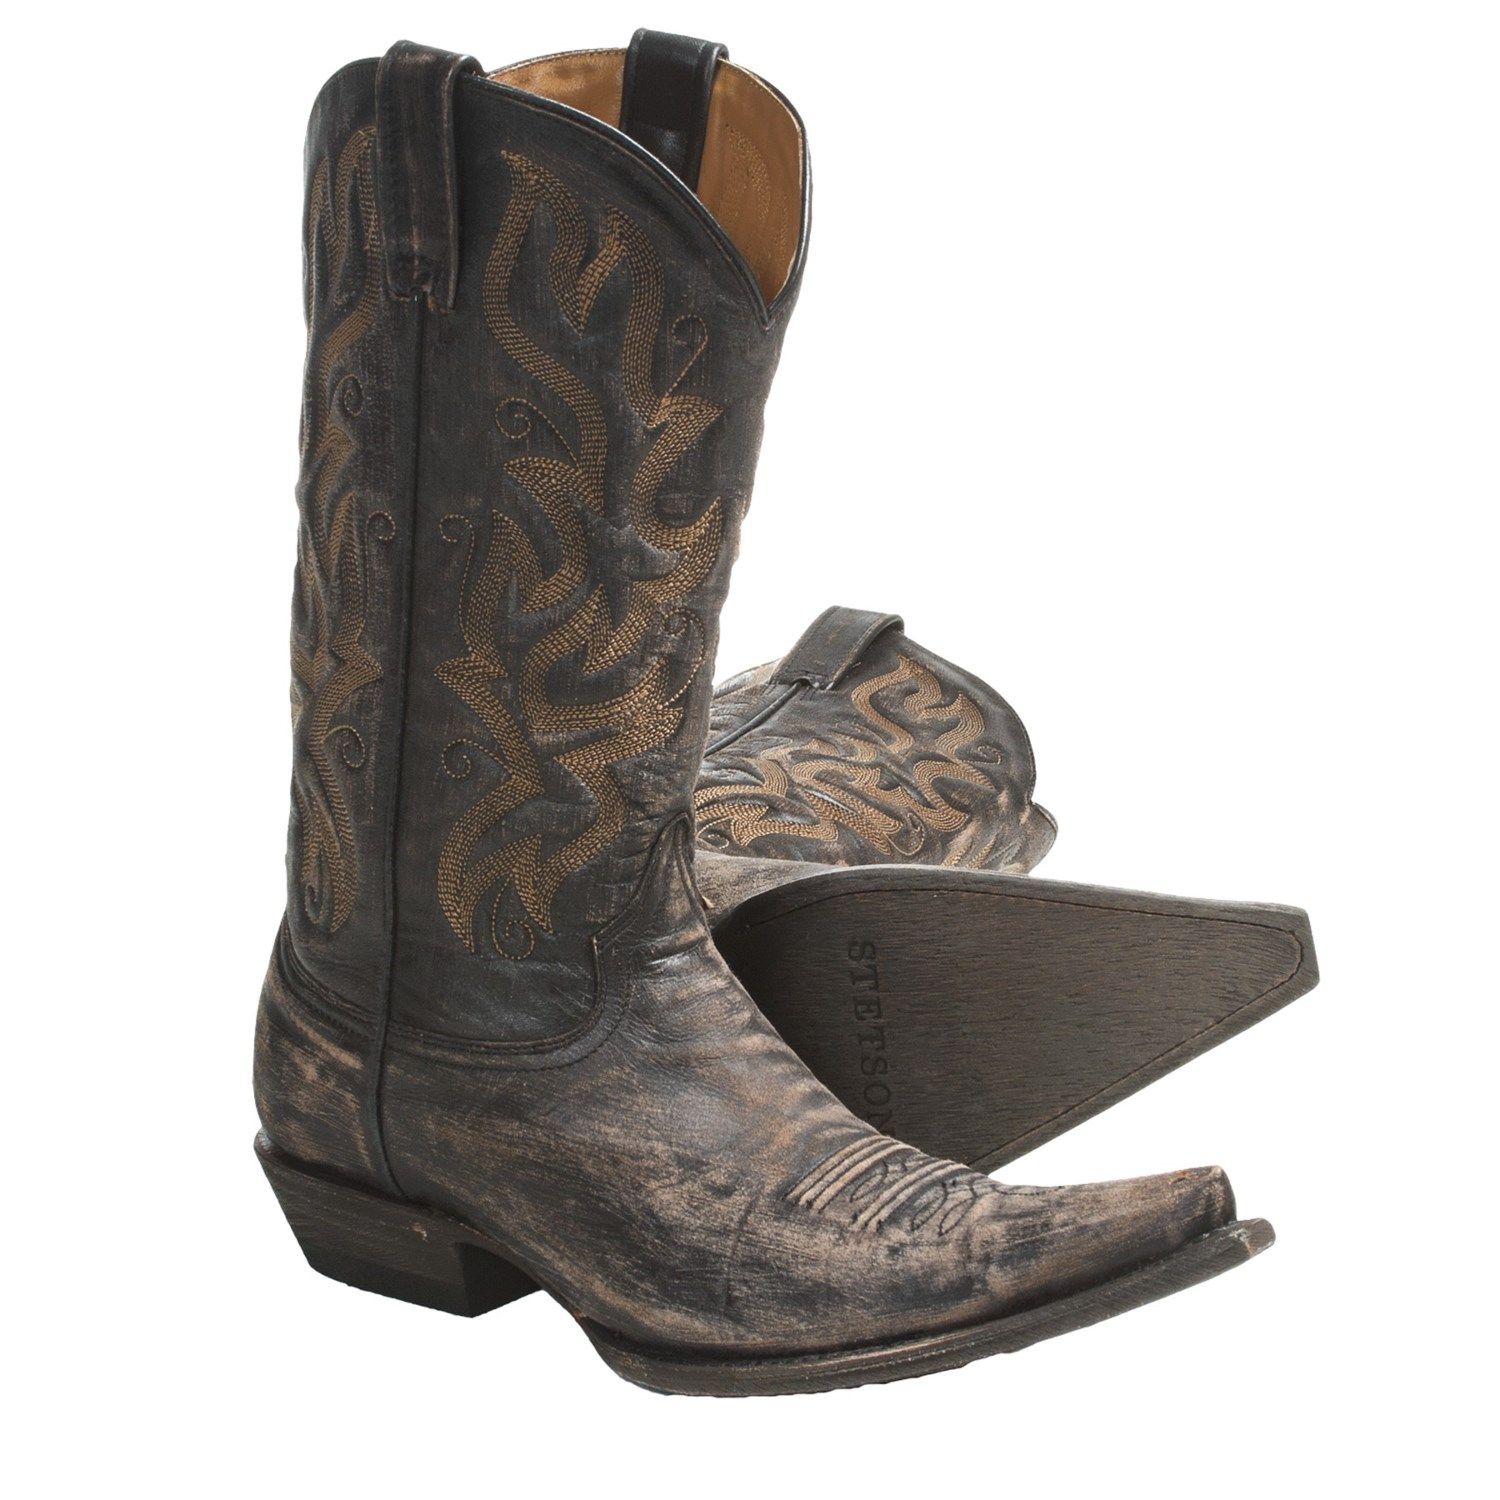 Stetson Fashion Snip Toe Cowboy Boots For Men 4508C